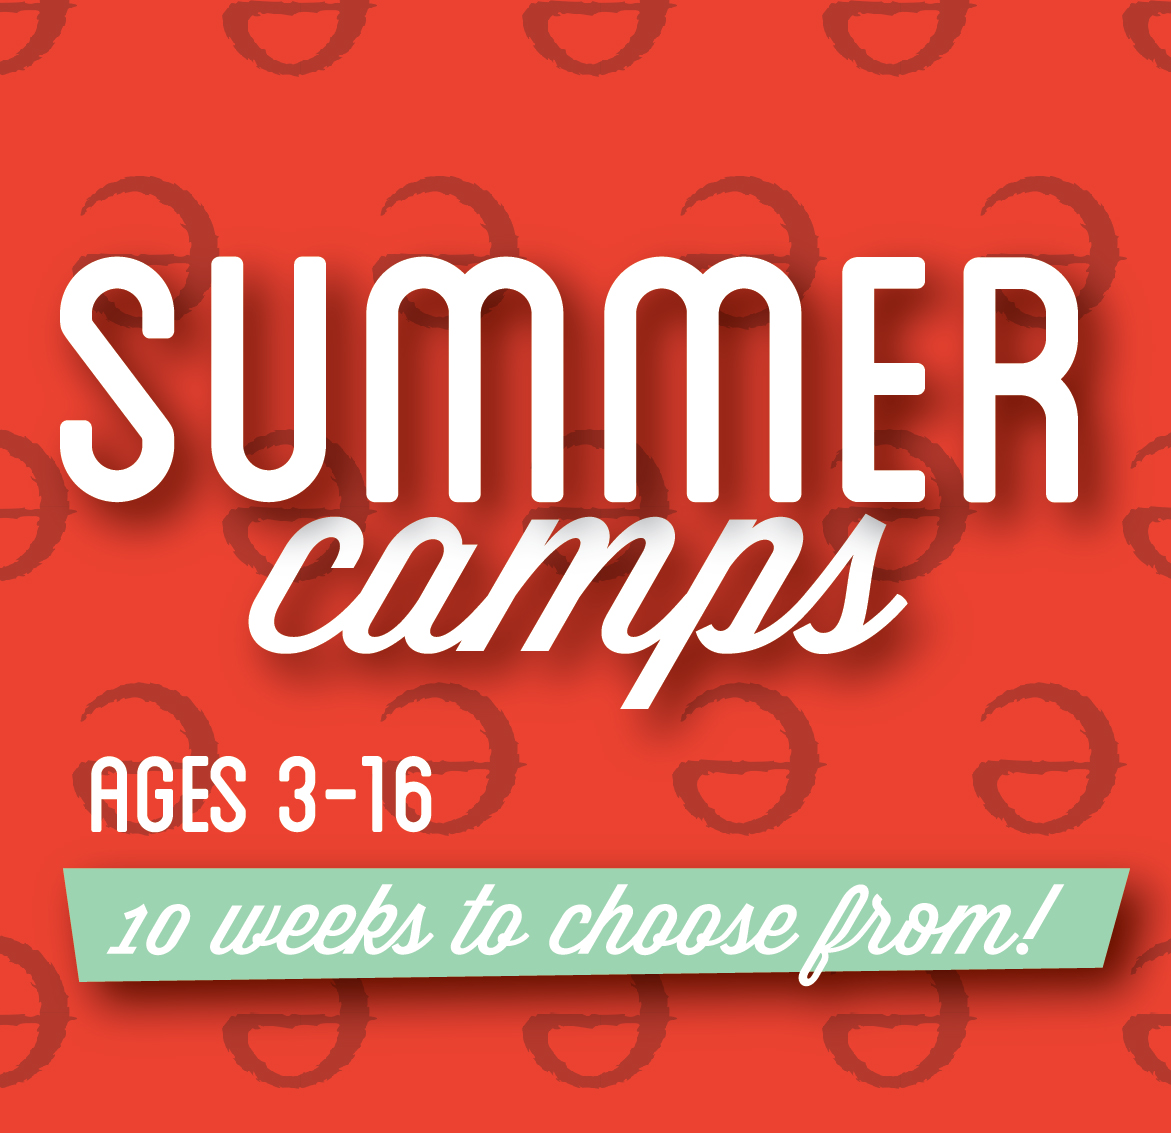 Summercamp square 01